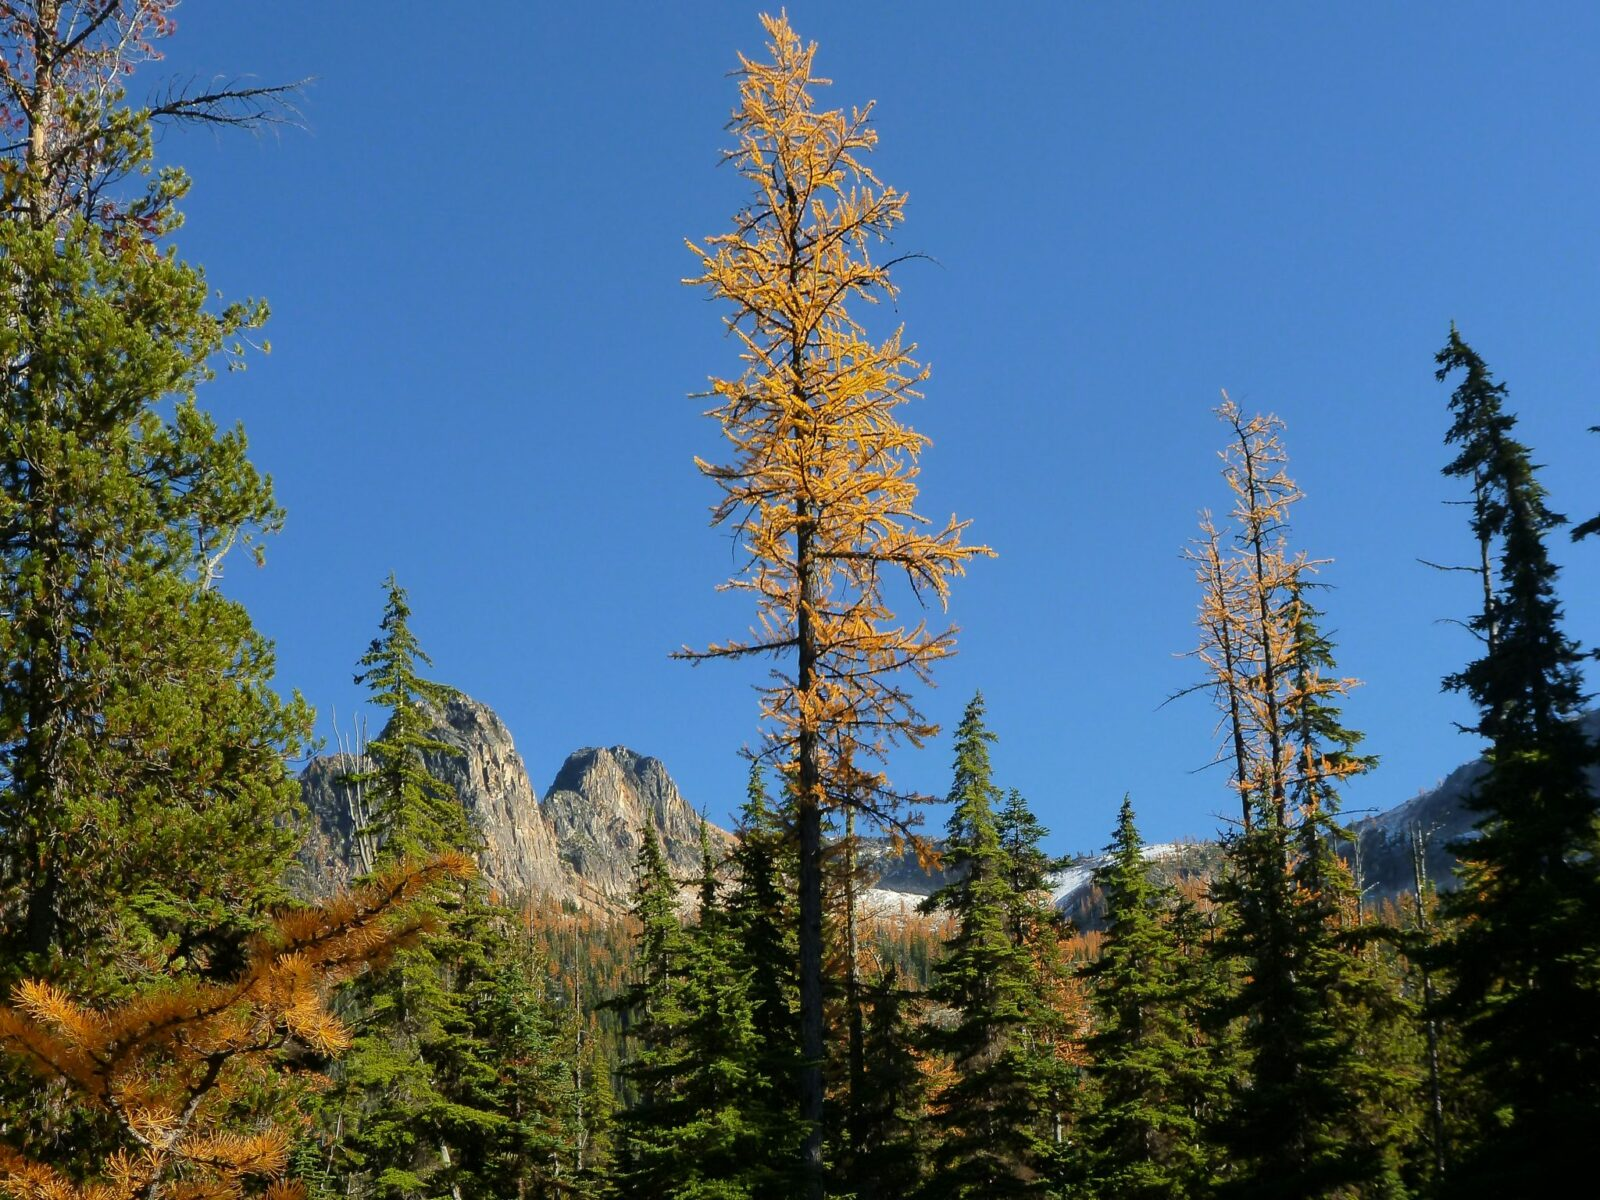 A single golden larch is surrounded by evergreen trees and more larches in the distance against the mountains